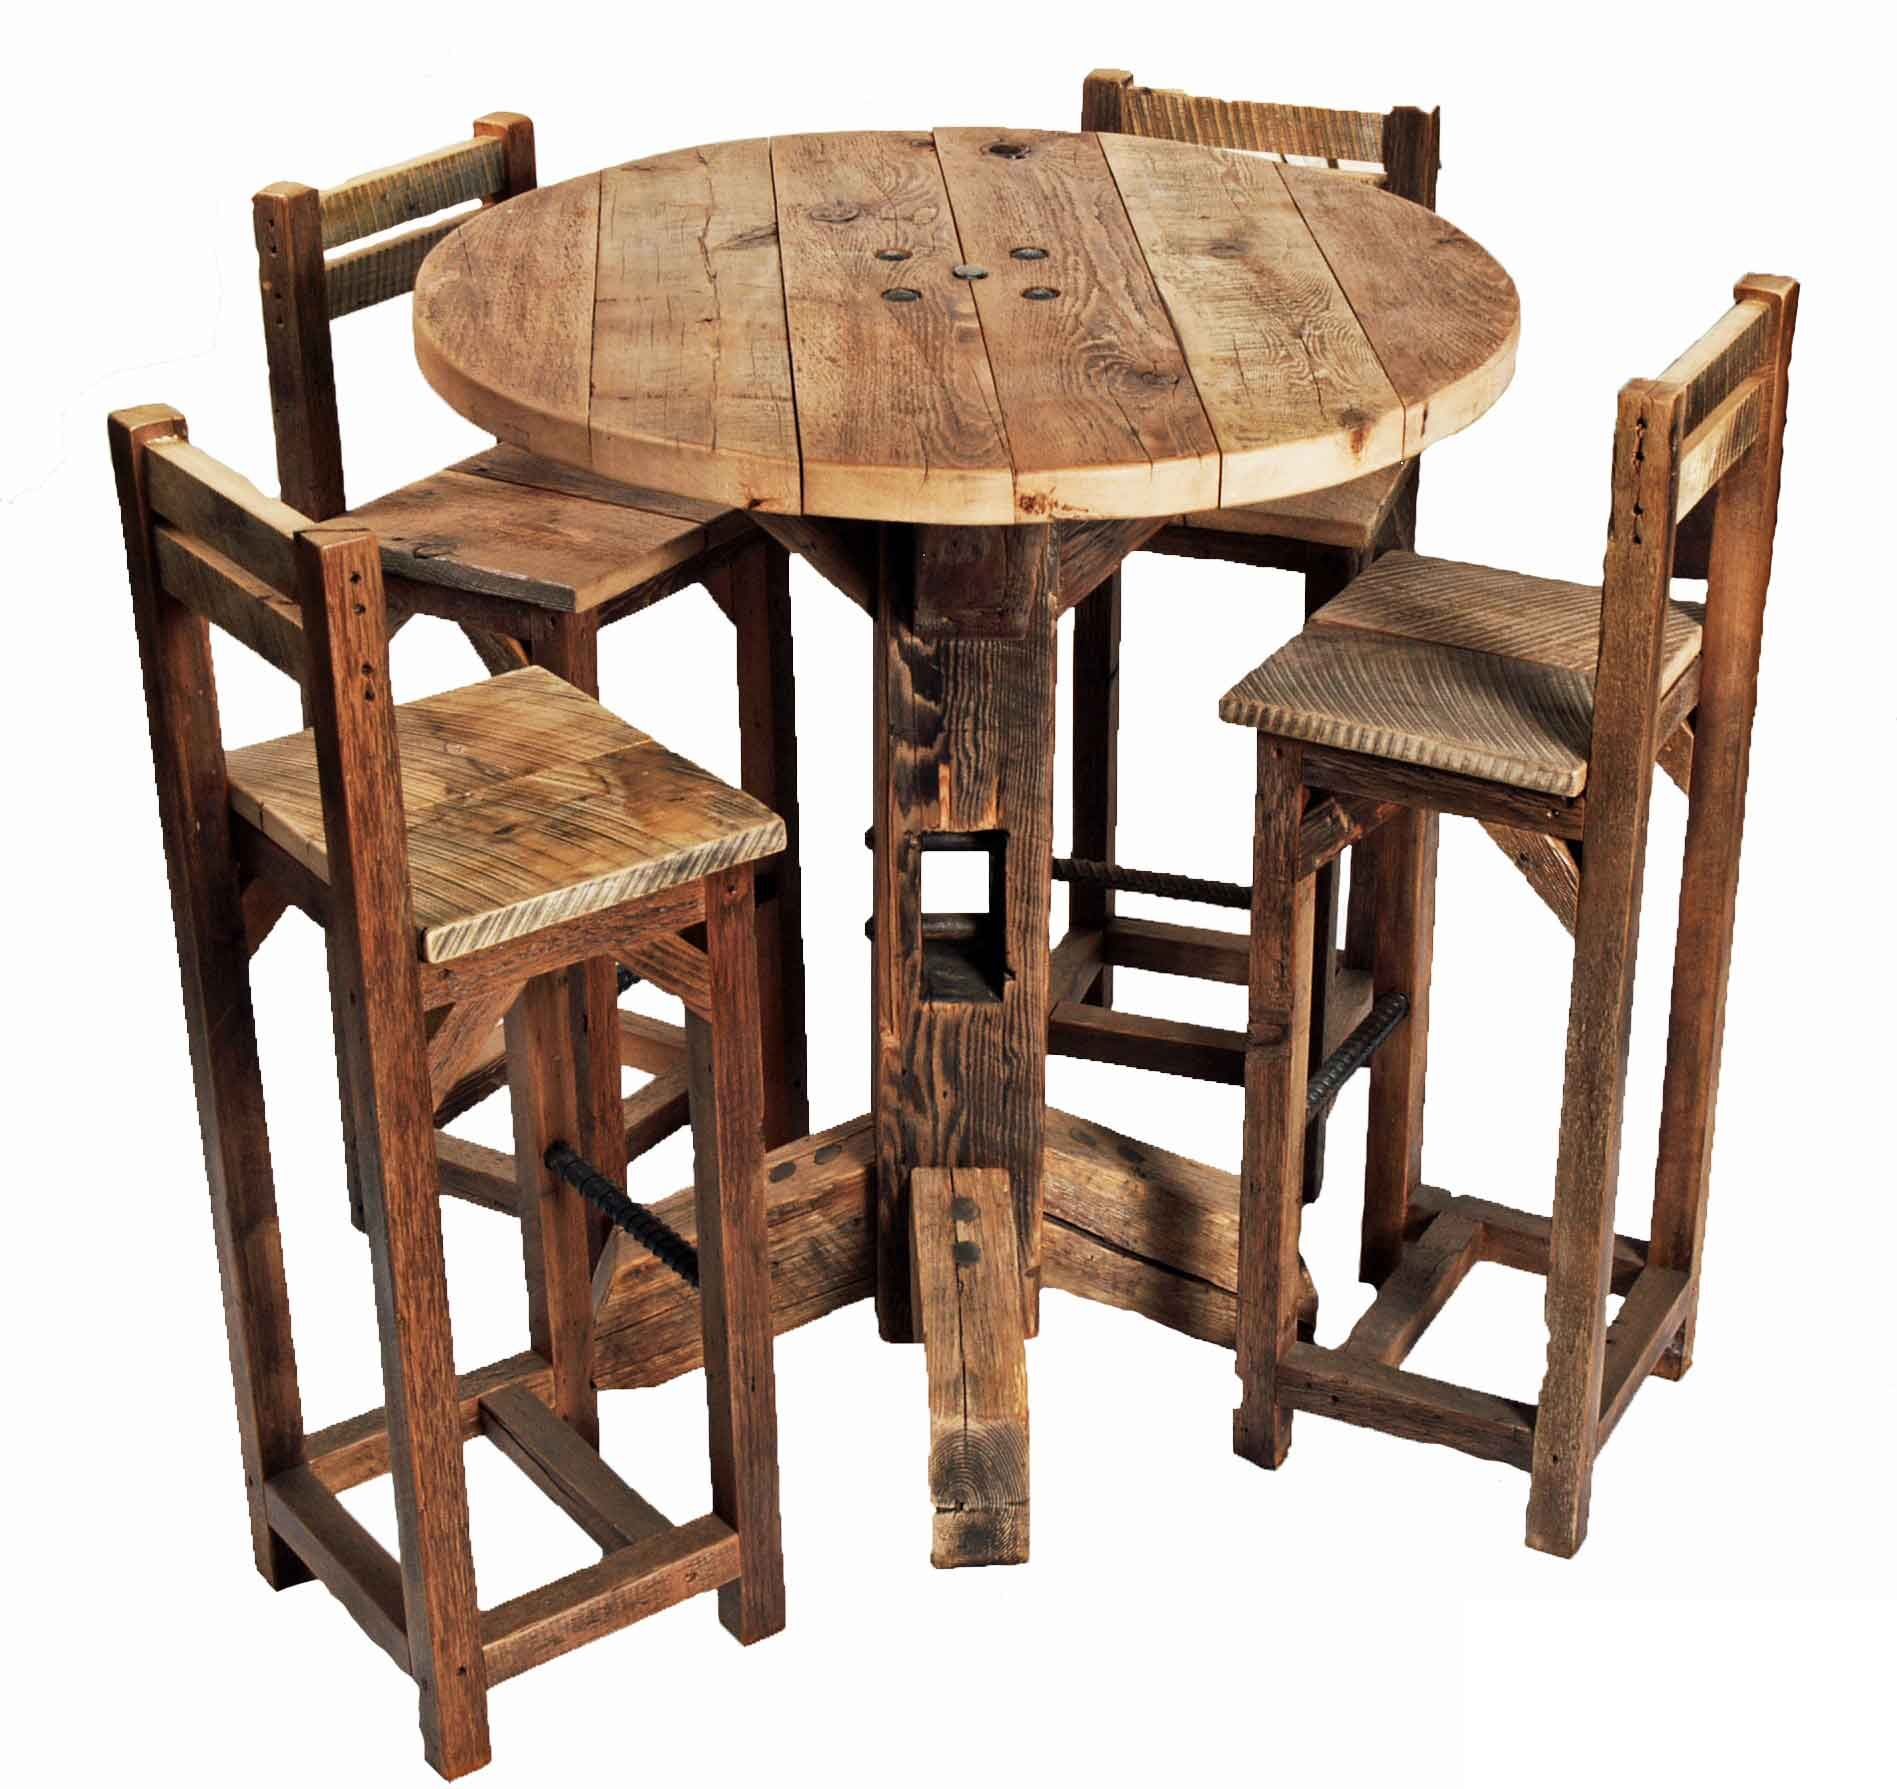 high table and stools for kitchen kitchen high chairs High table and stools for kitchen Furniture Old Rustic Small High Round Top Kitchen Table